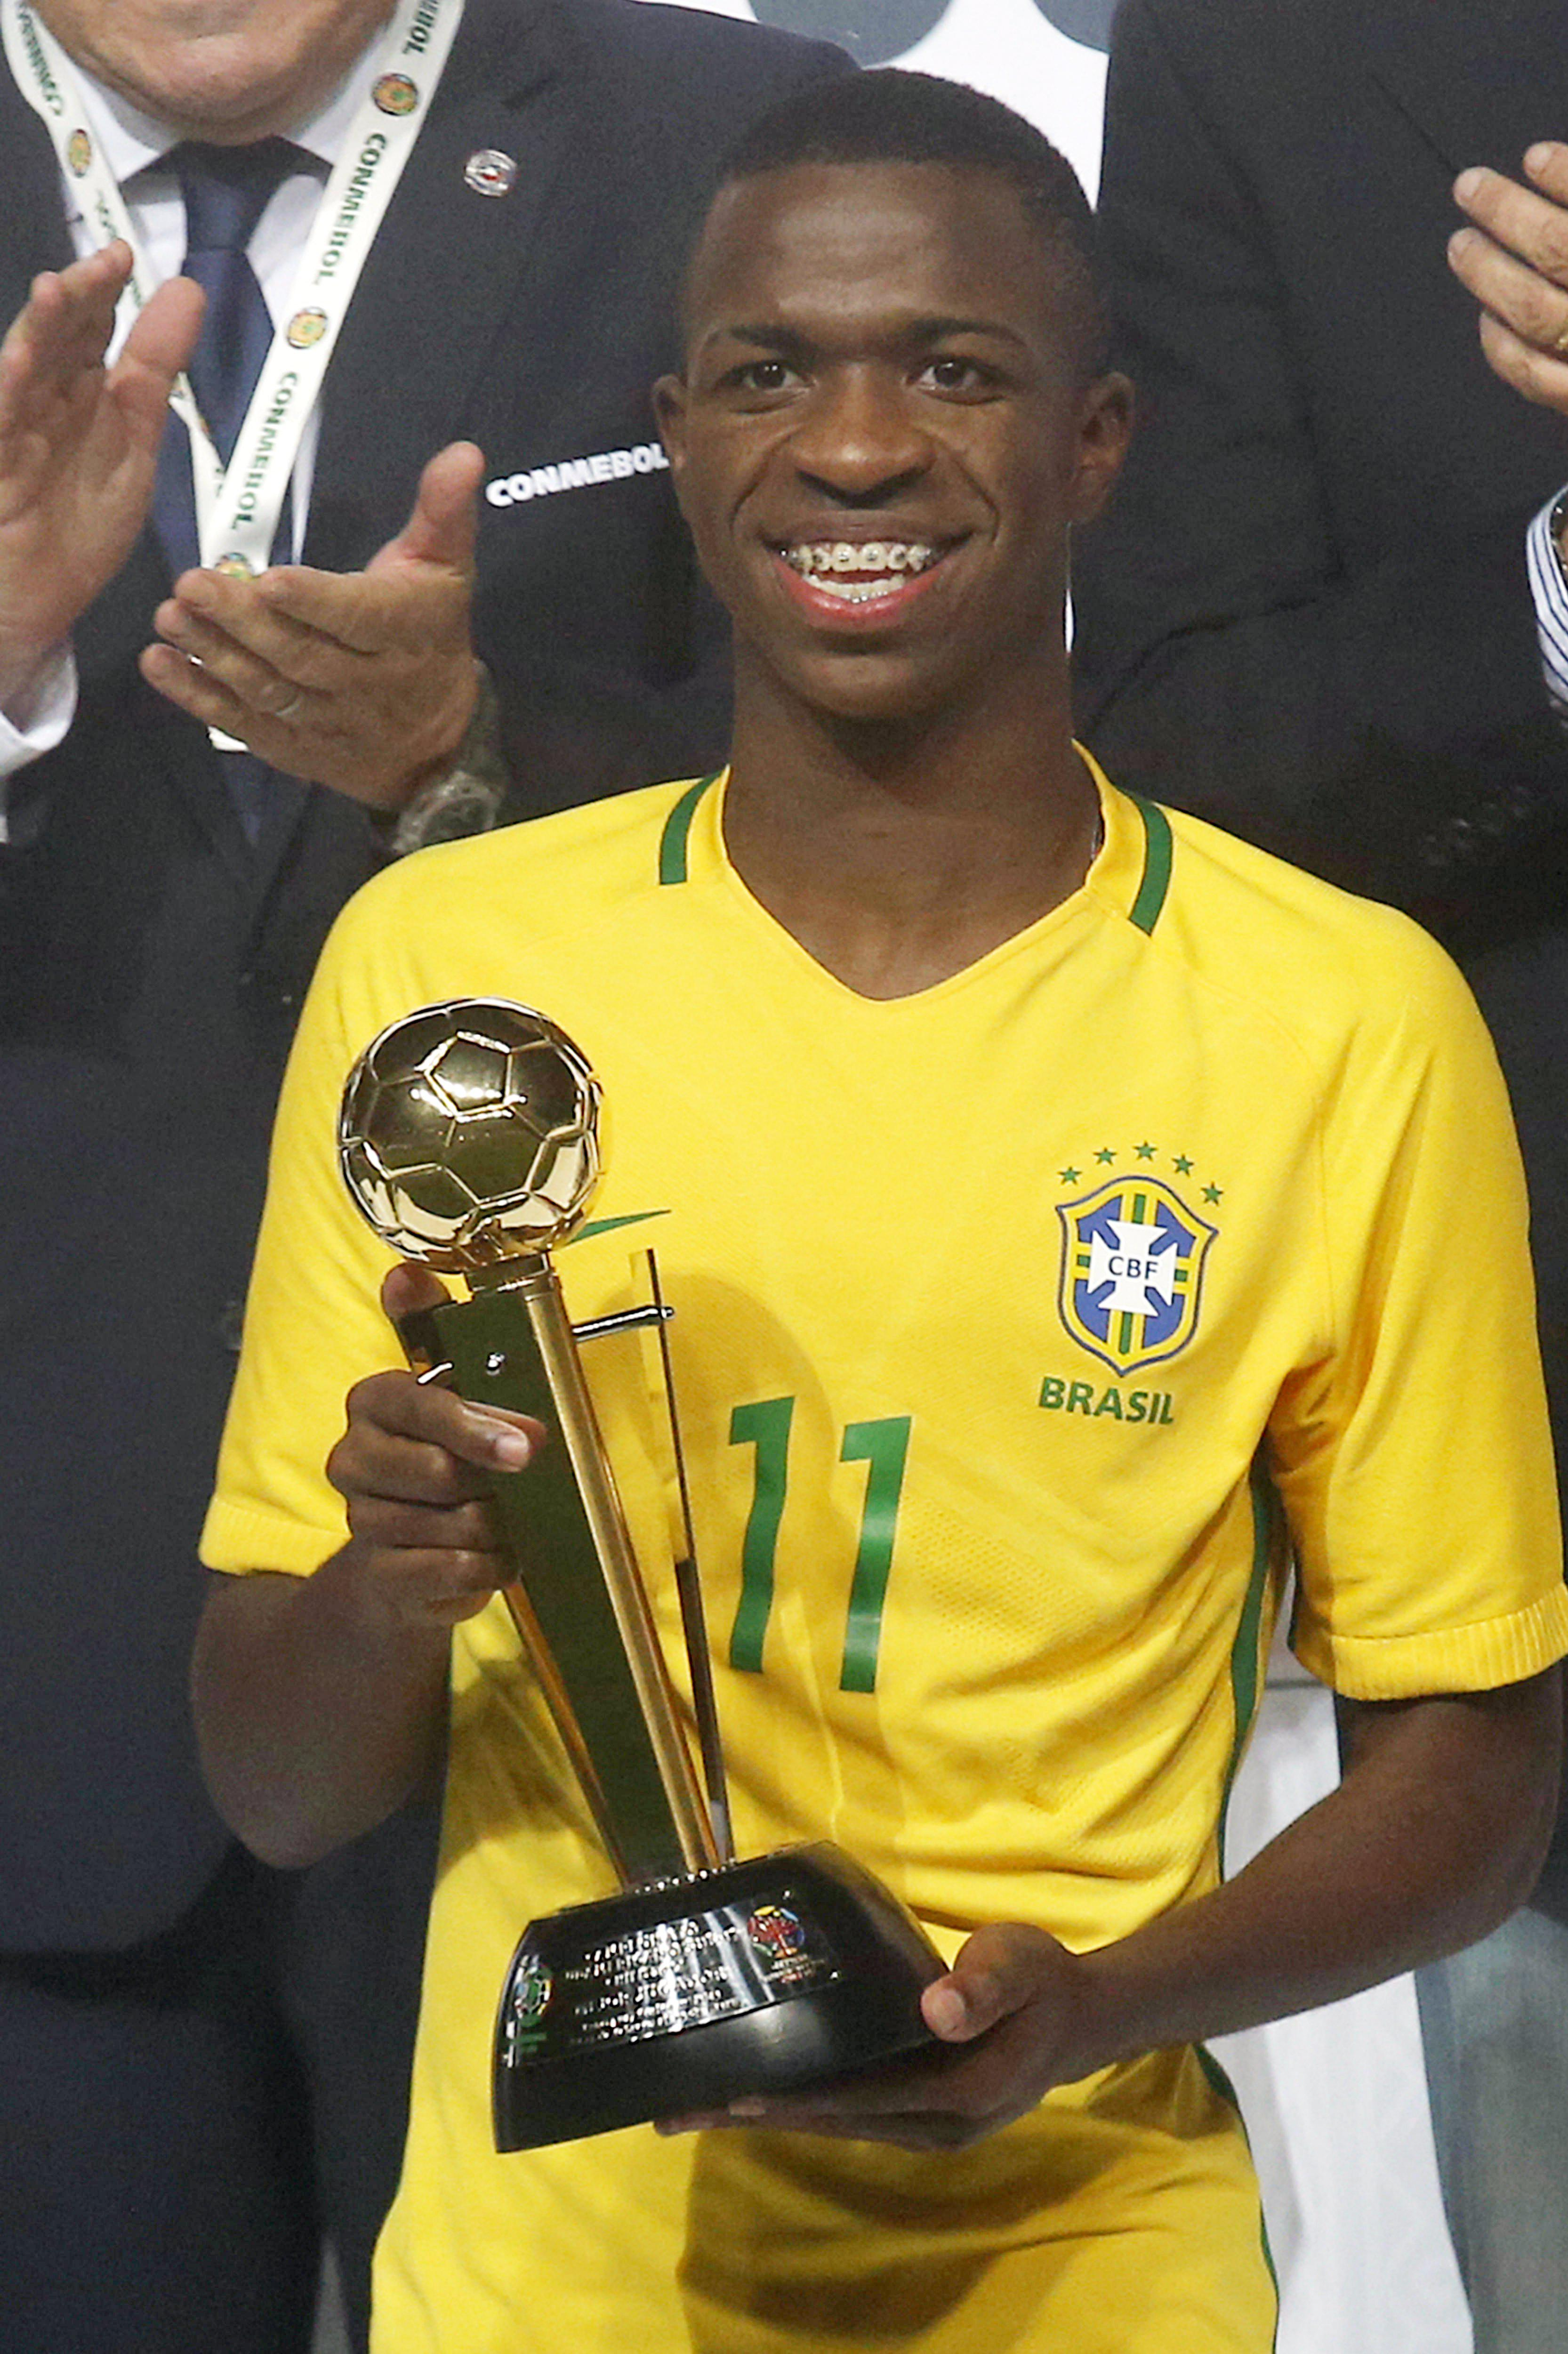 Vinicus Junior led Brazil to glory at the South American Under-17 Championship